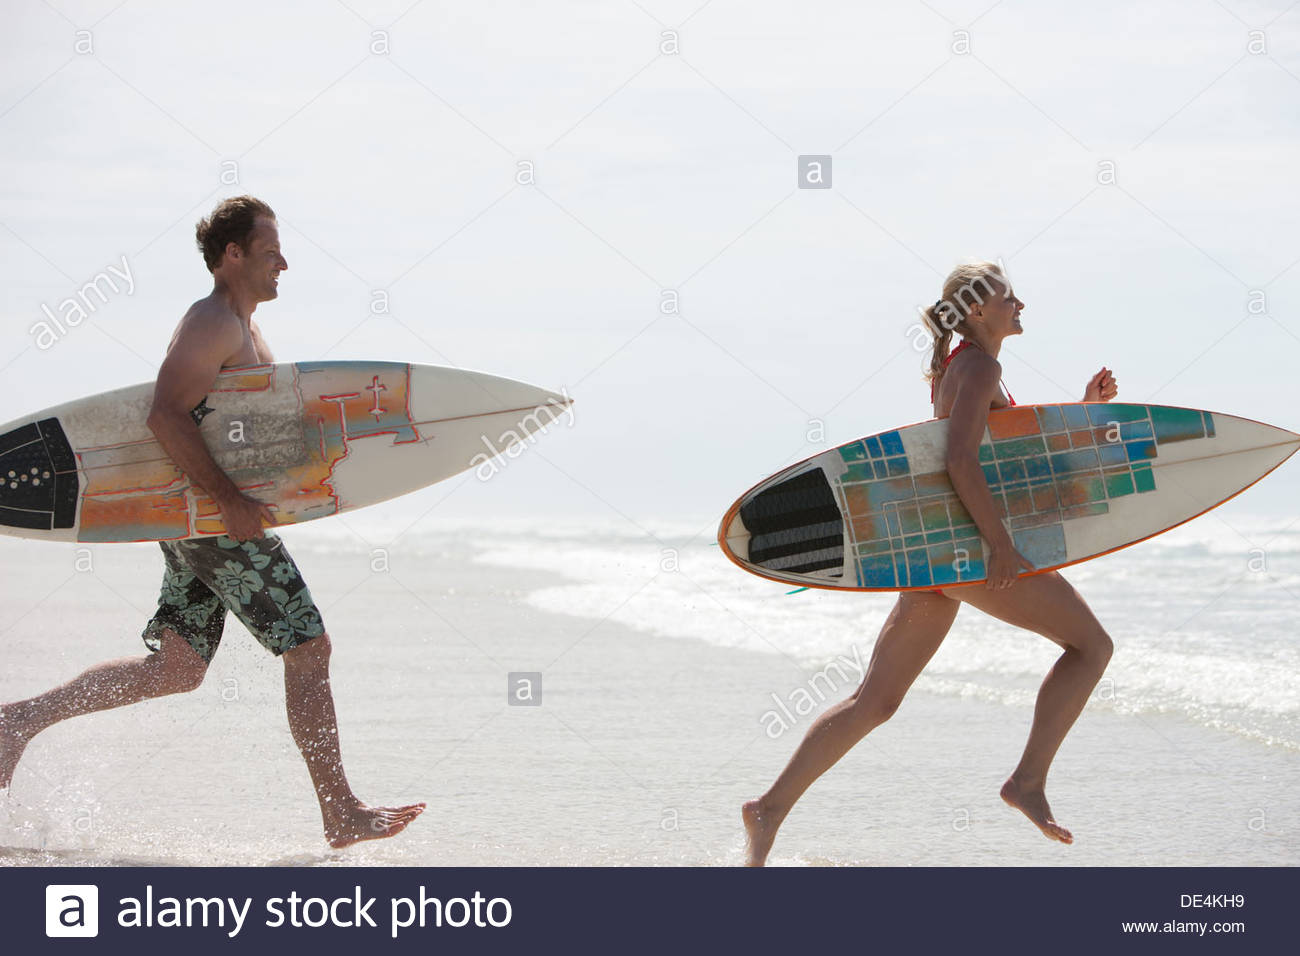 Couple avec des planches de running on beach Photo Stock